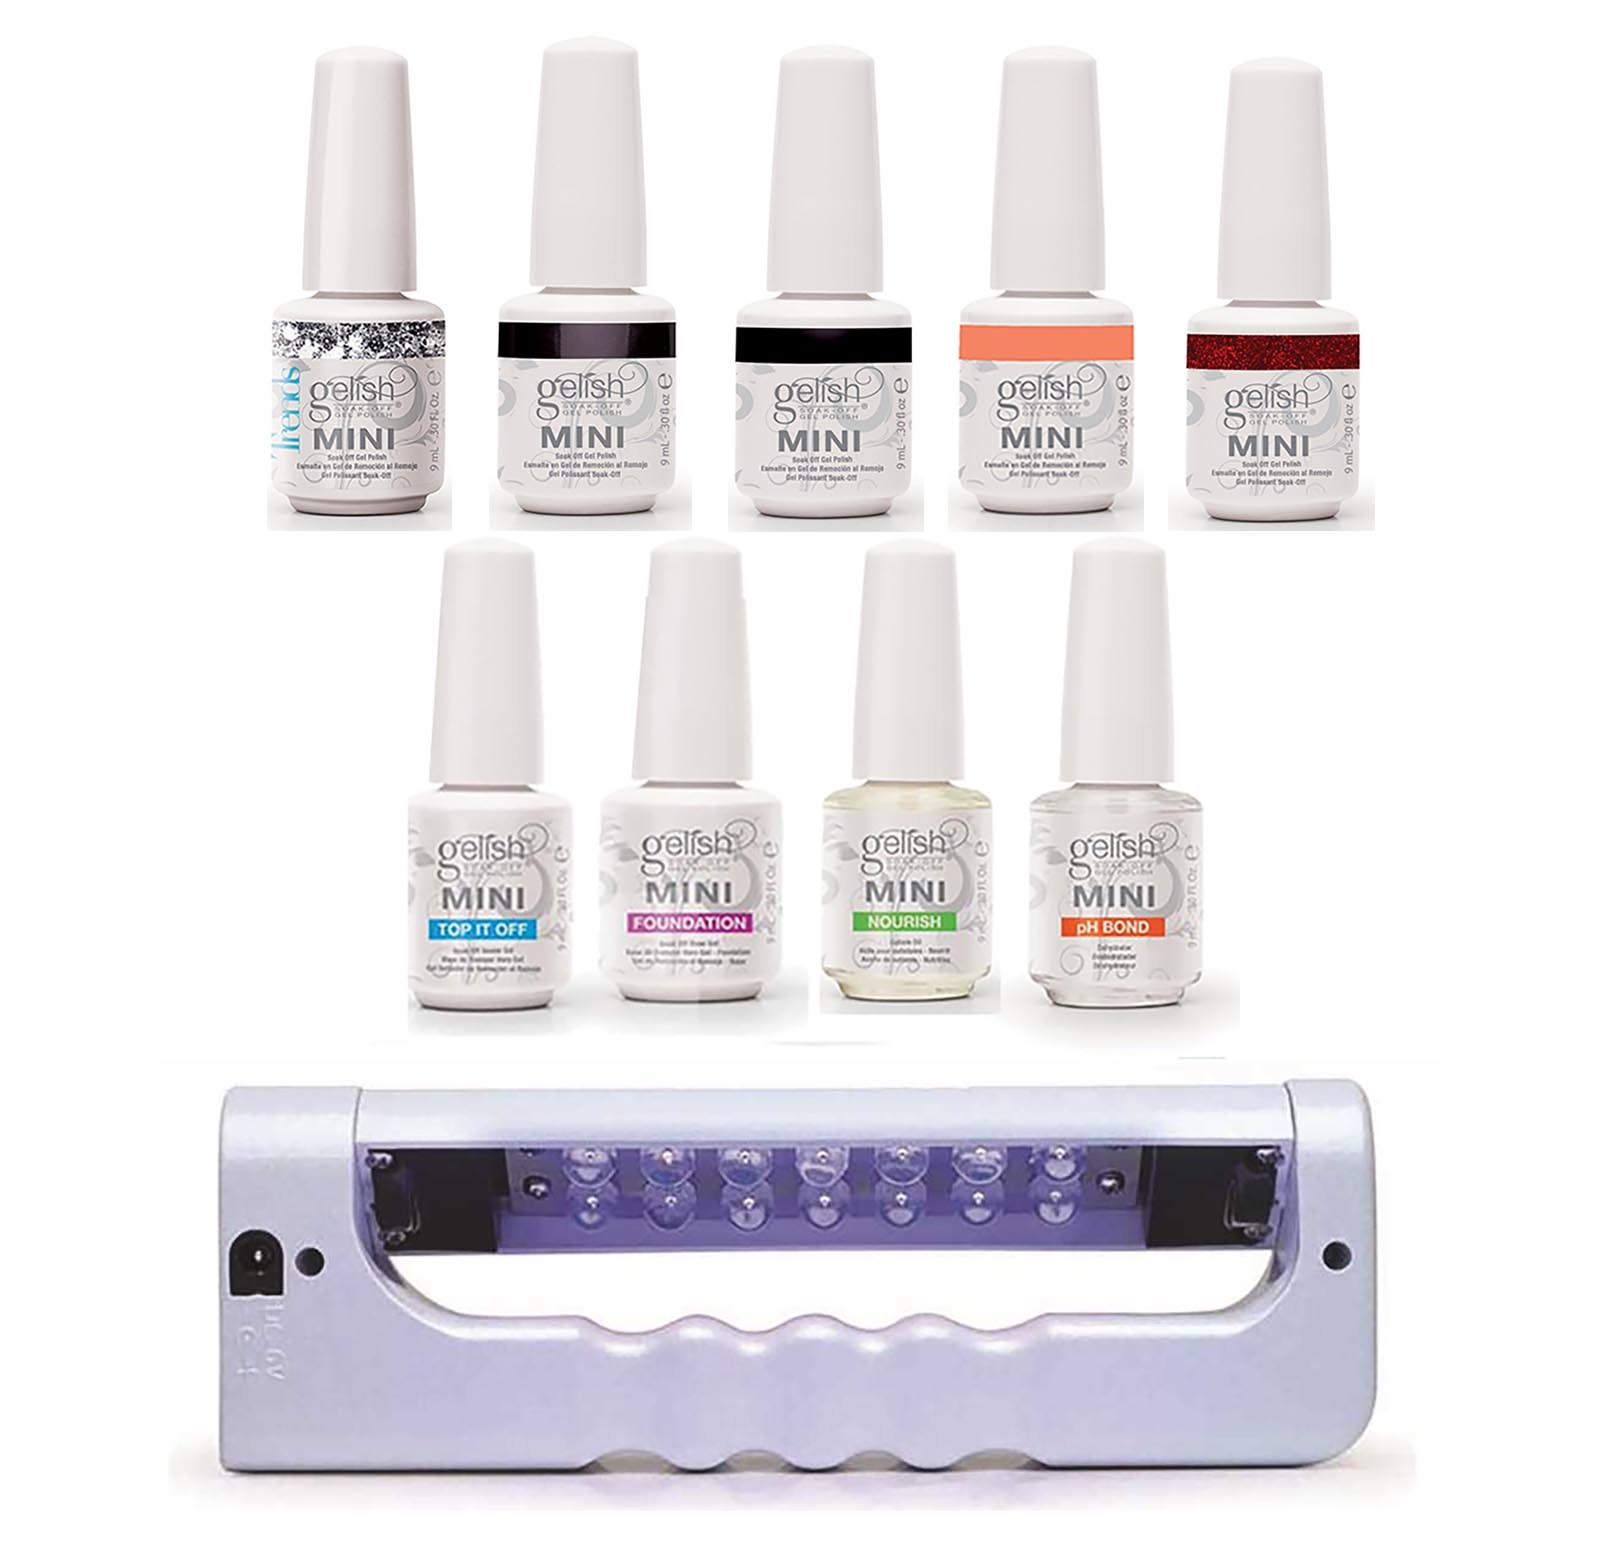 Uv Gel Nail Polish Starter Kit: Gelish Mini Bottles 5 Color UV LED Gel Nail Polish Starter